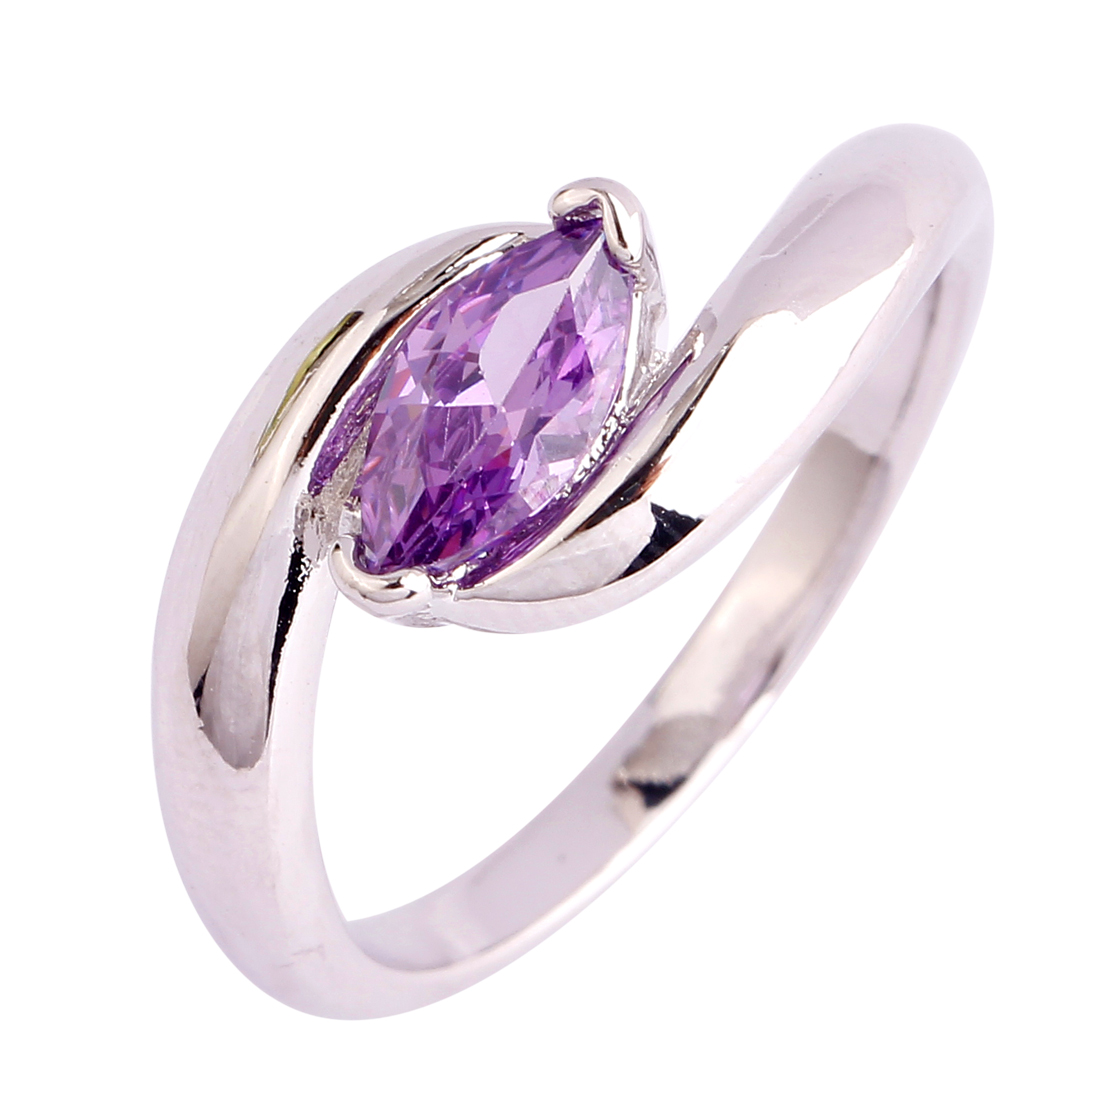 new delicate marquise cut rings amethyst 925 silver